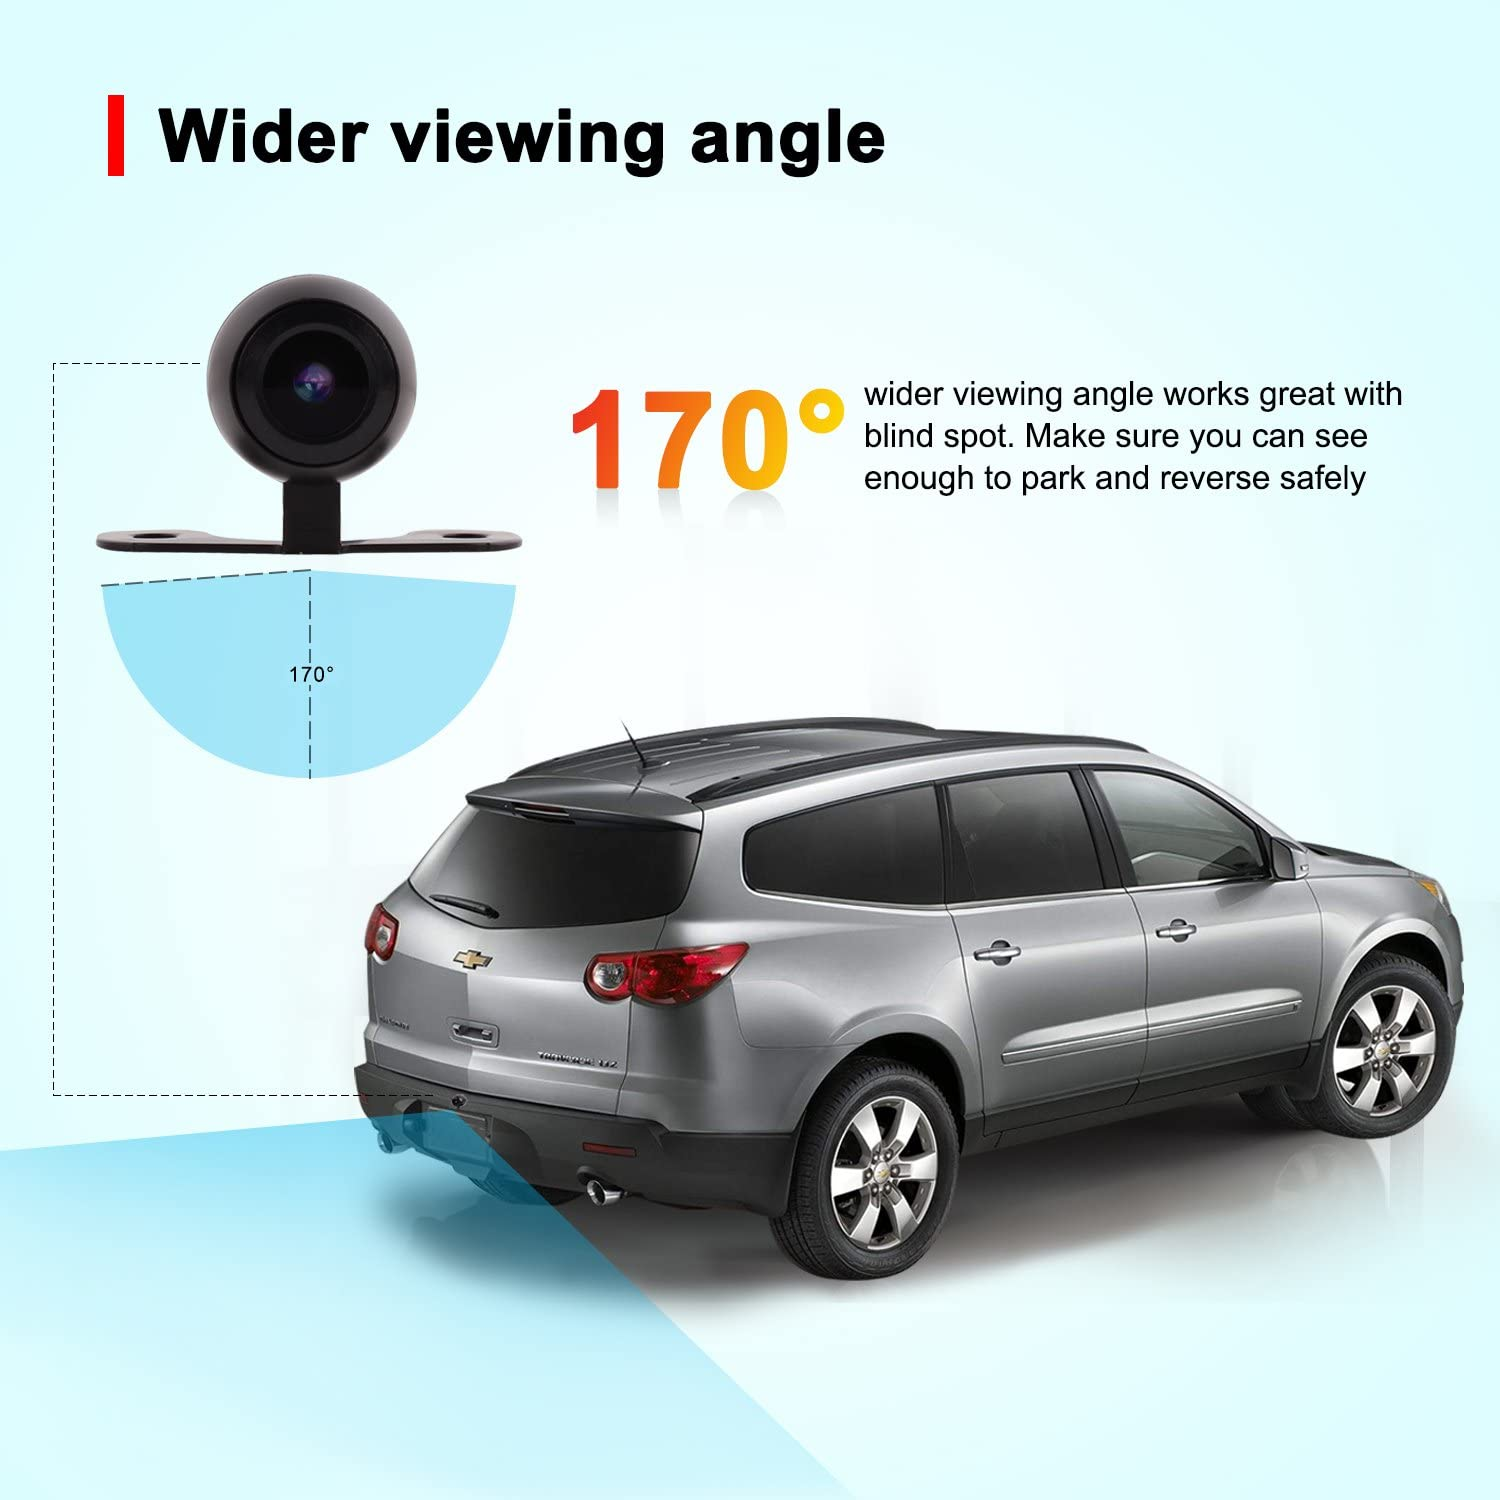 Backup Rear View Universal Mini Car Cameras for Parking Side Front Rear View Night Vision Hidden Spy Camera 170 Degrees Wide View Angle Easy Installation Good Looking 2 Years Warranty Fanco Electronics